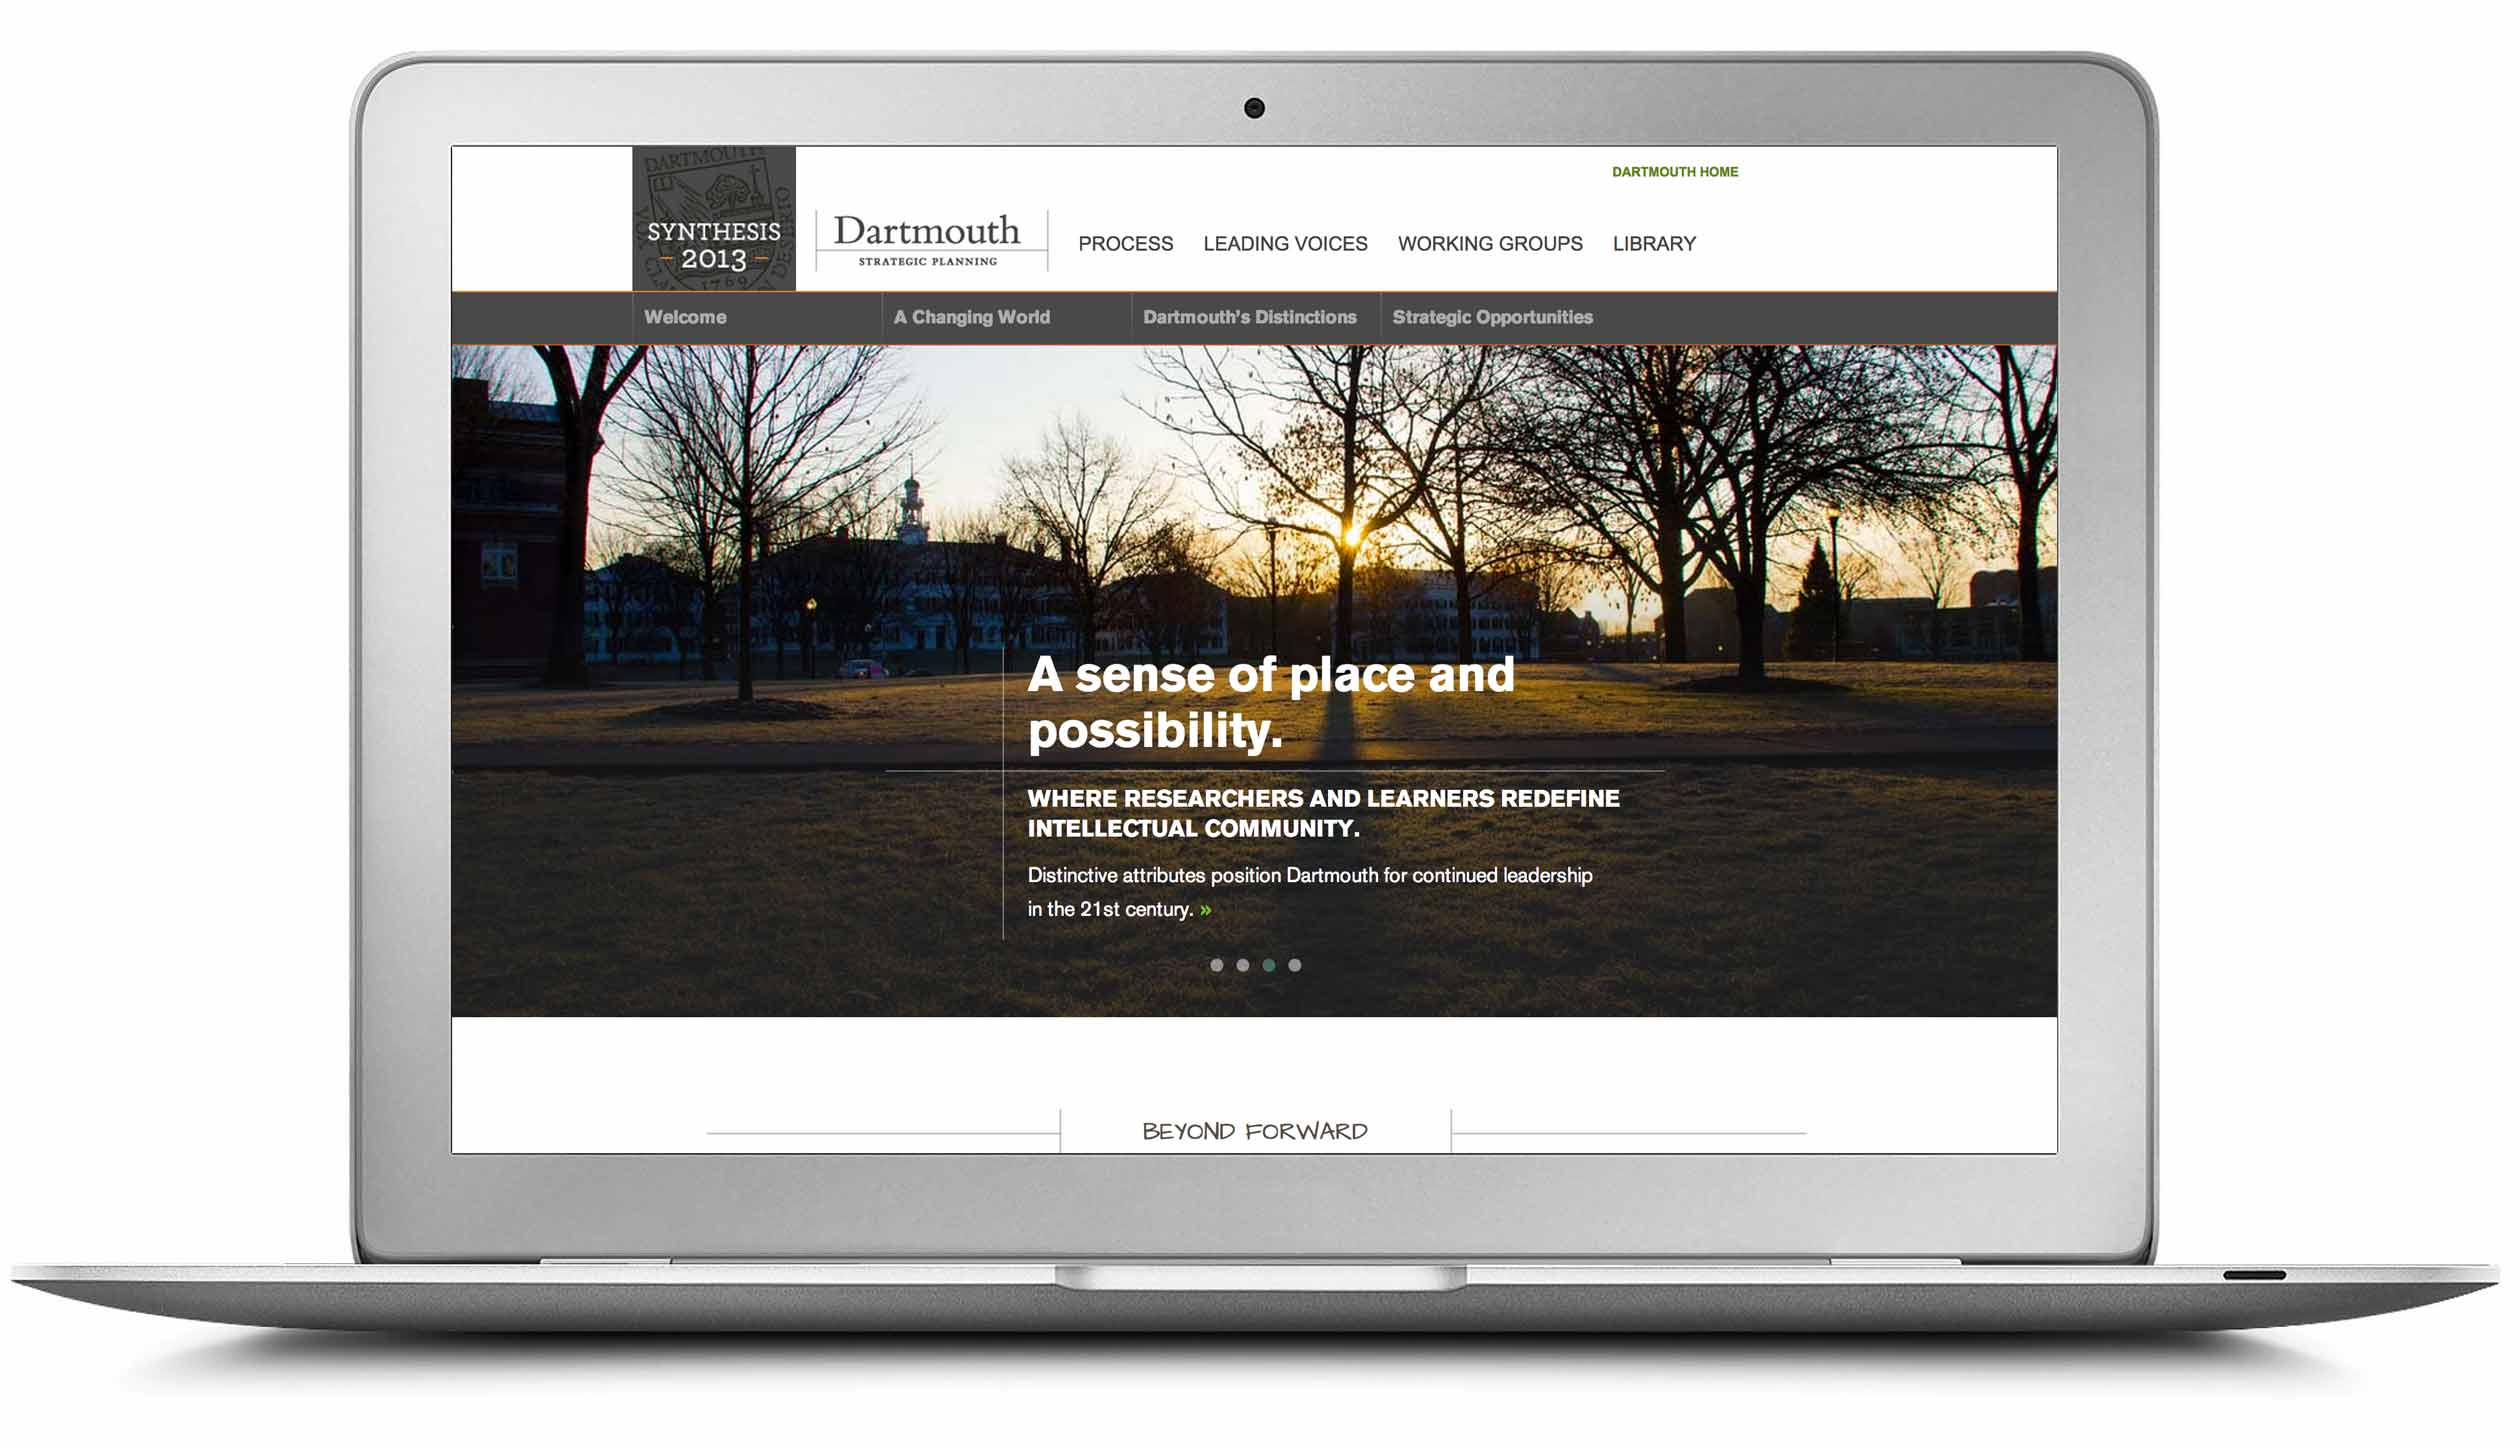 Dartmouth Strategic Planning home page